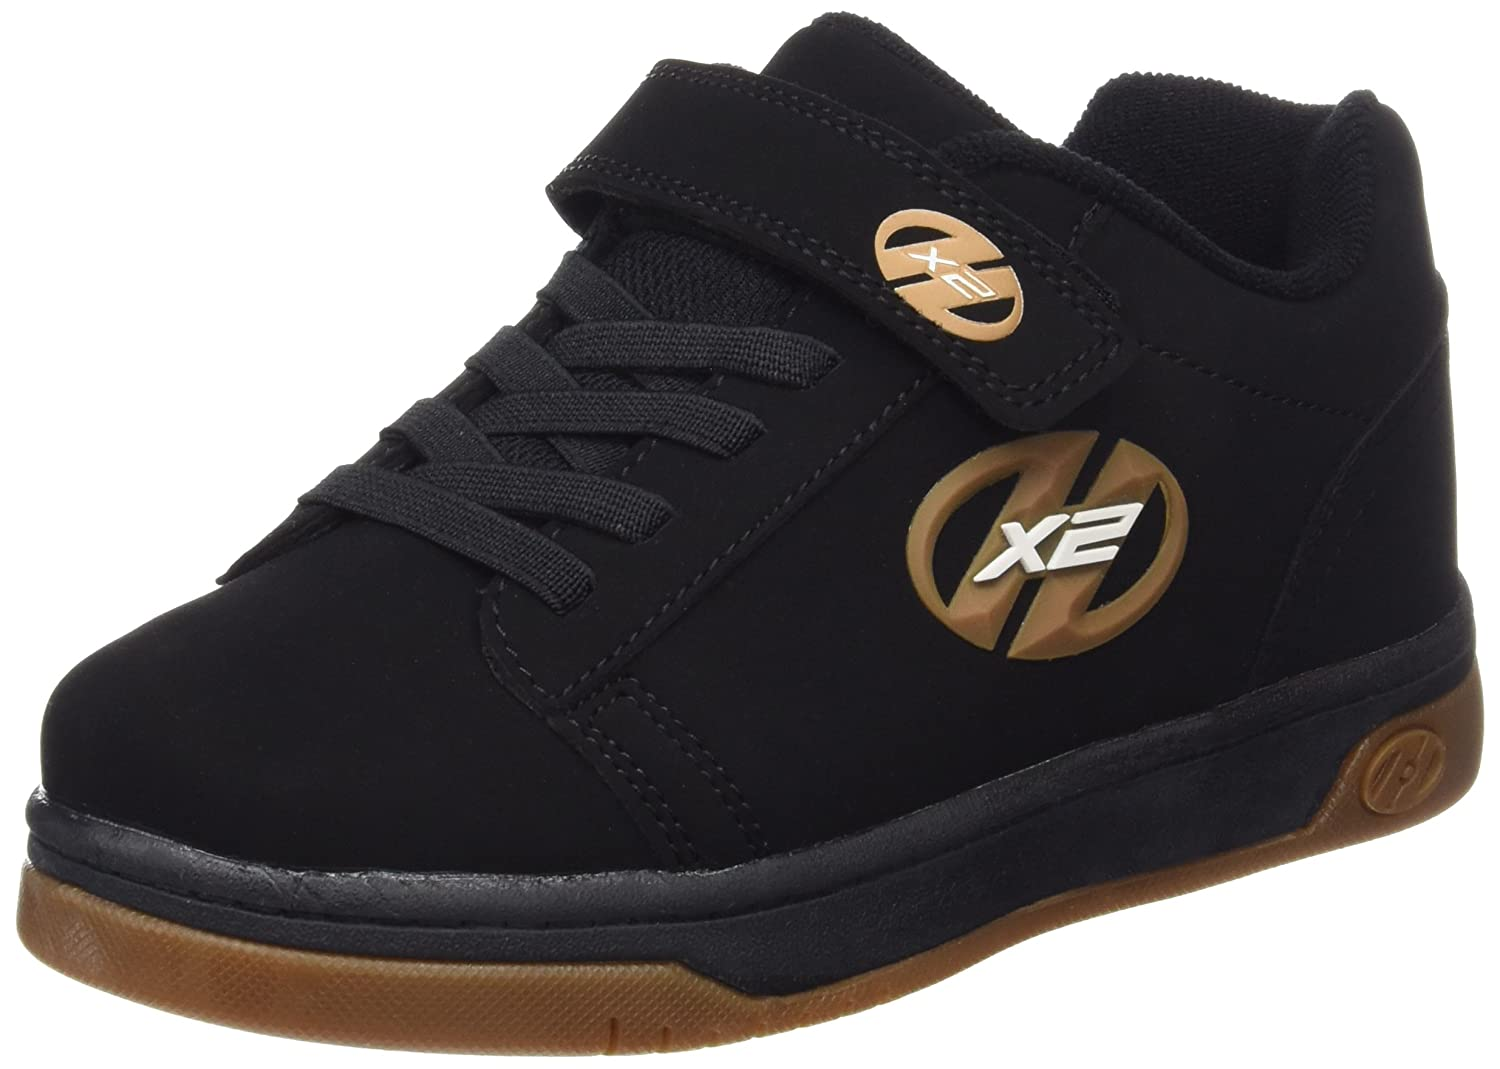 Heelys Dual Up X2 PU Sneaker (Little Kid/Big Kid)